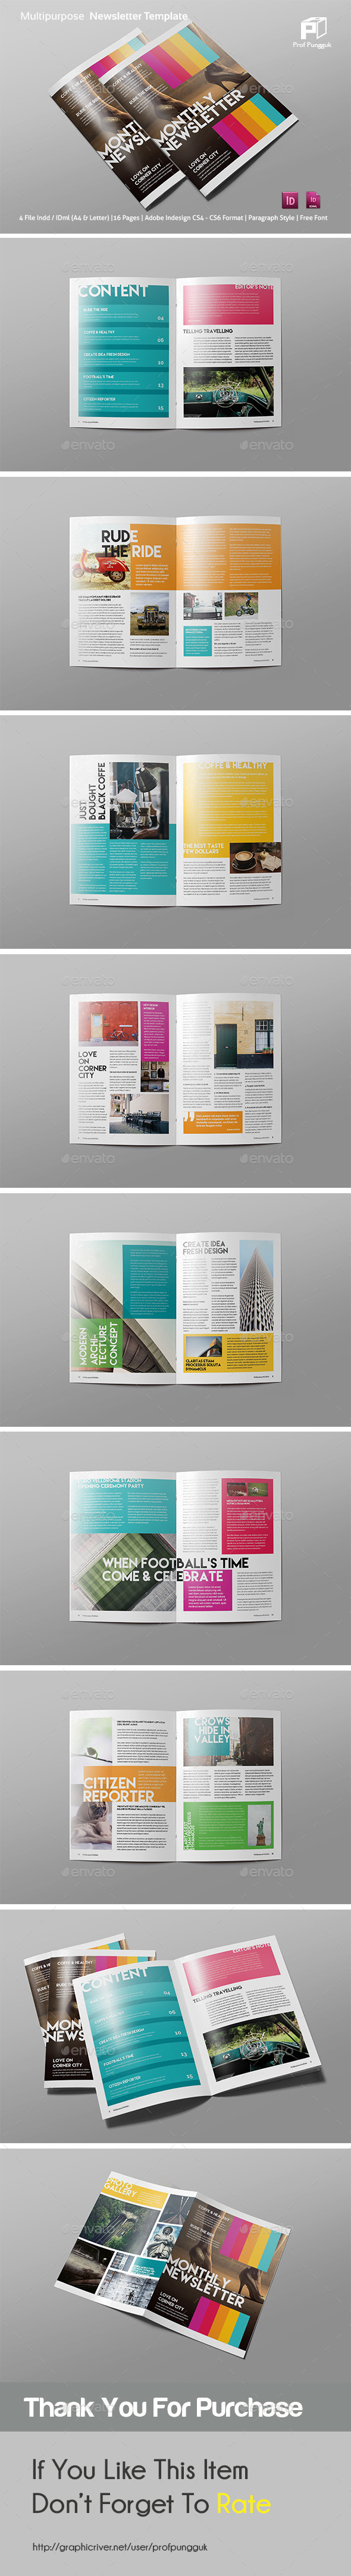 Modern colorful newsletter vol 3 by profpungguk for Modern newsletter design